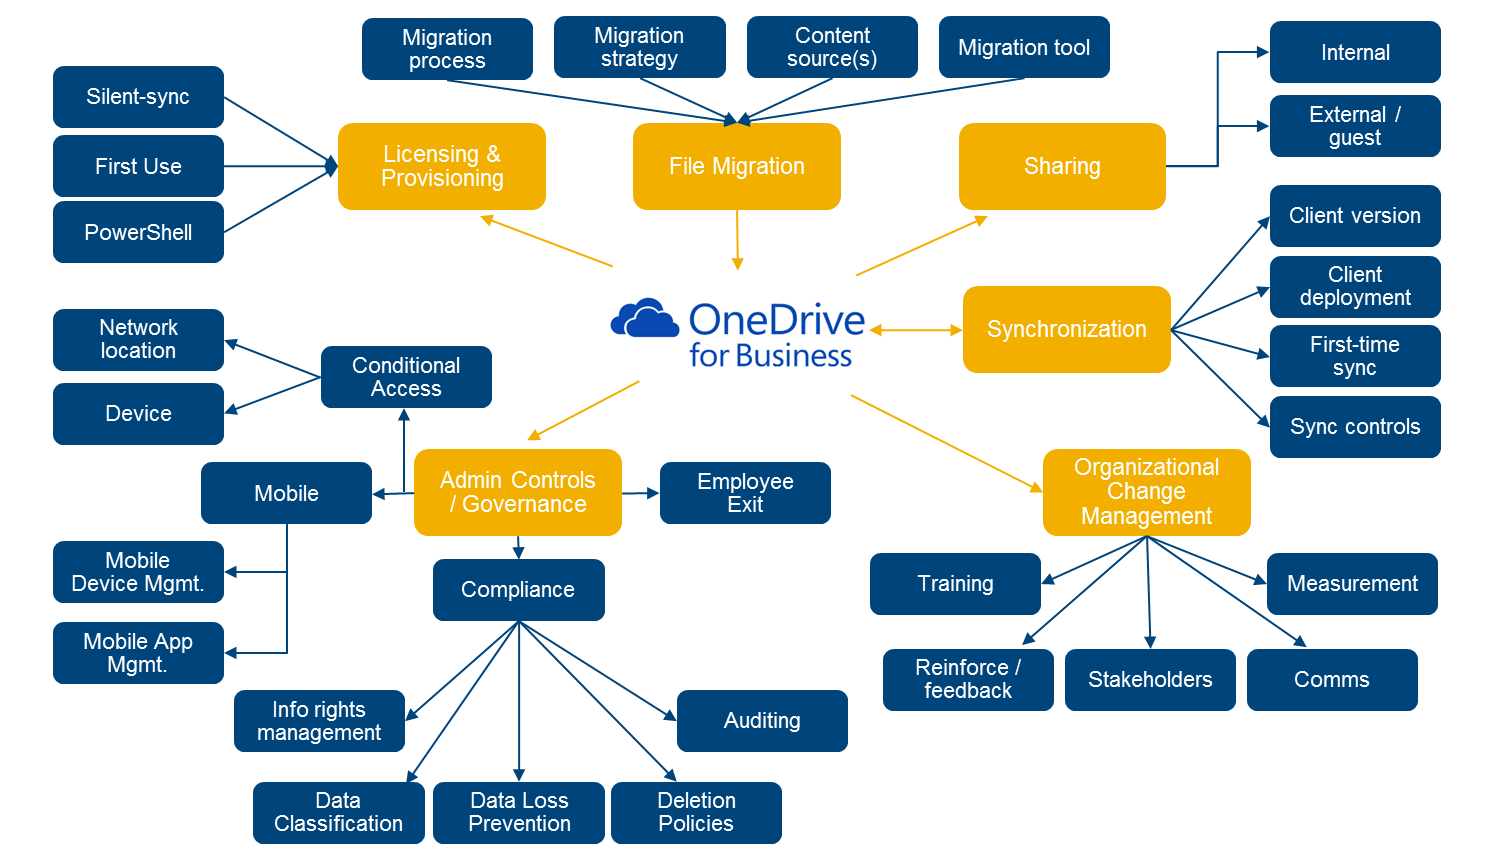 Use Microsoft OneDrive For Business – A Cloud Storage Platform